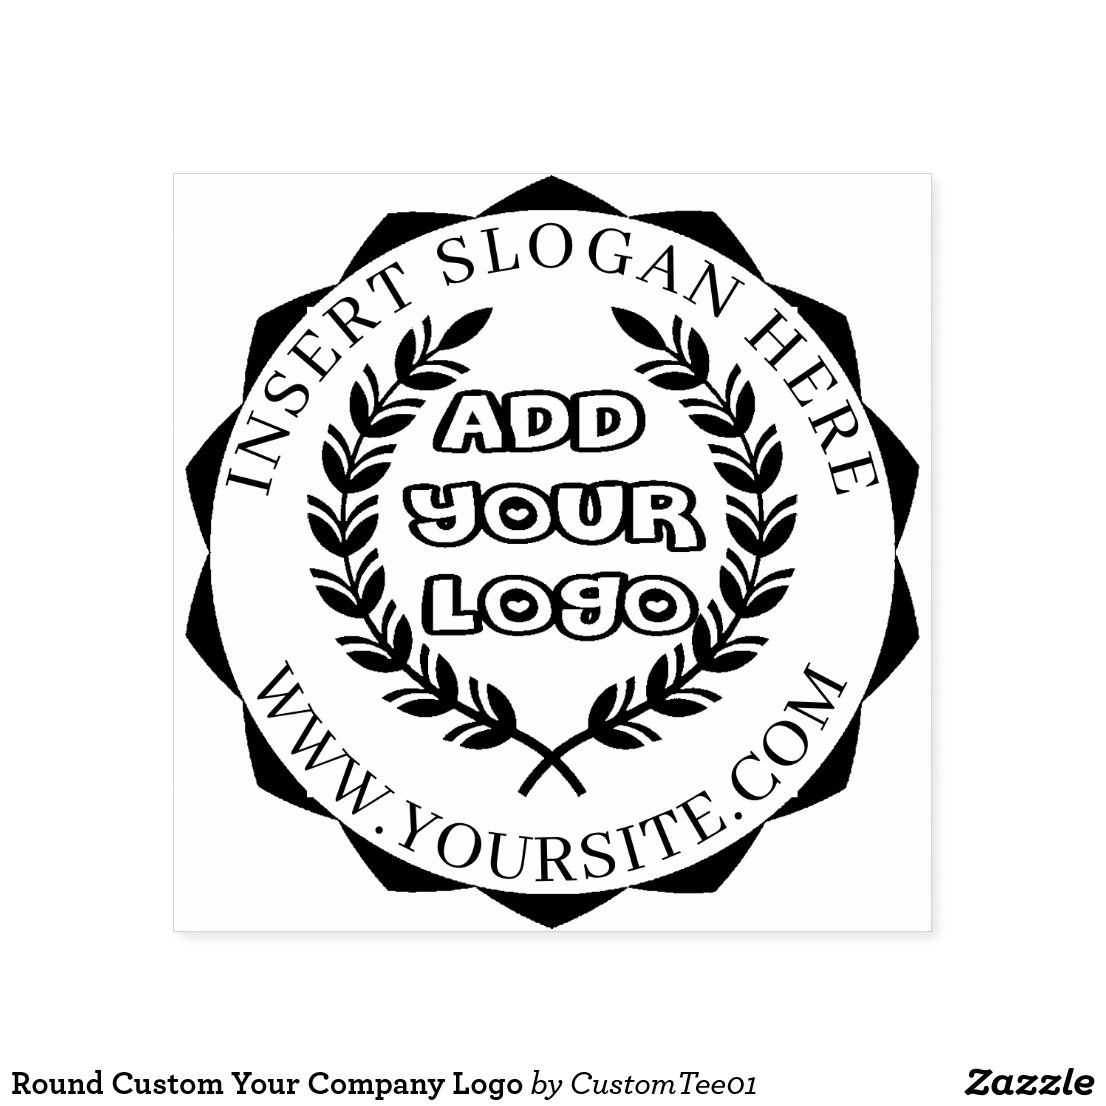 Round Custom Your Company Logo Selfinking Stamp